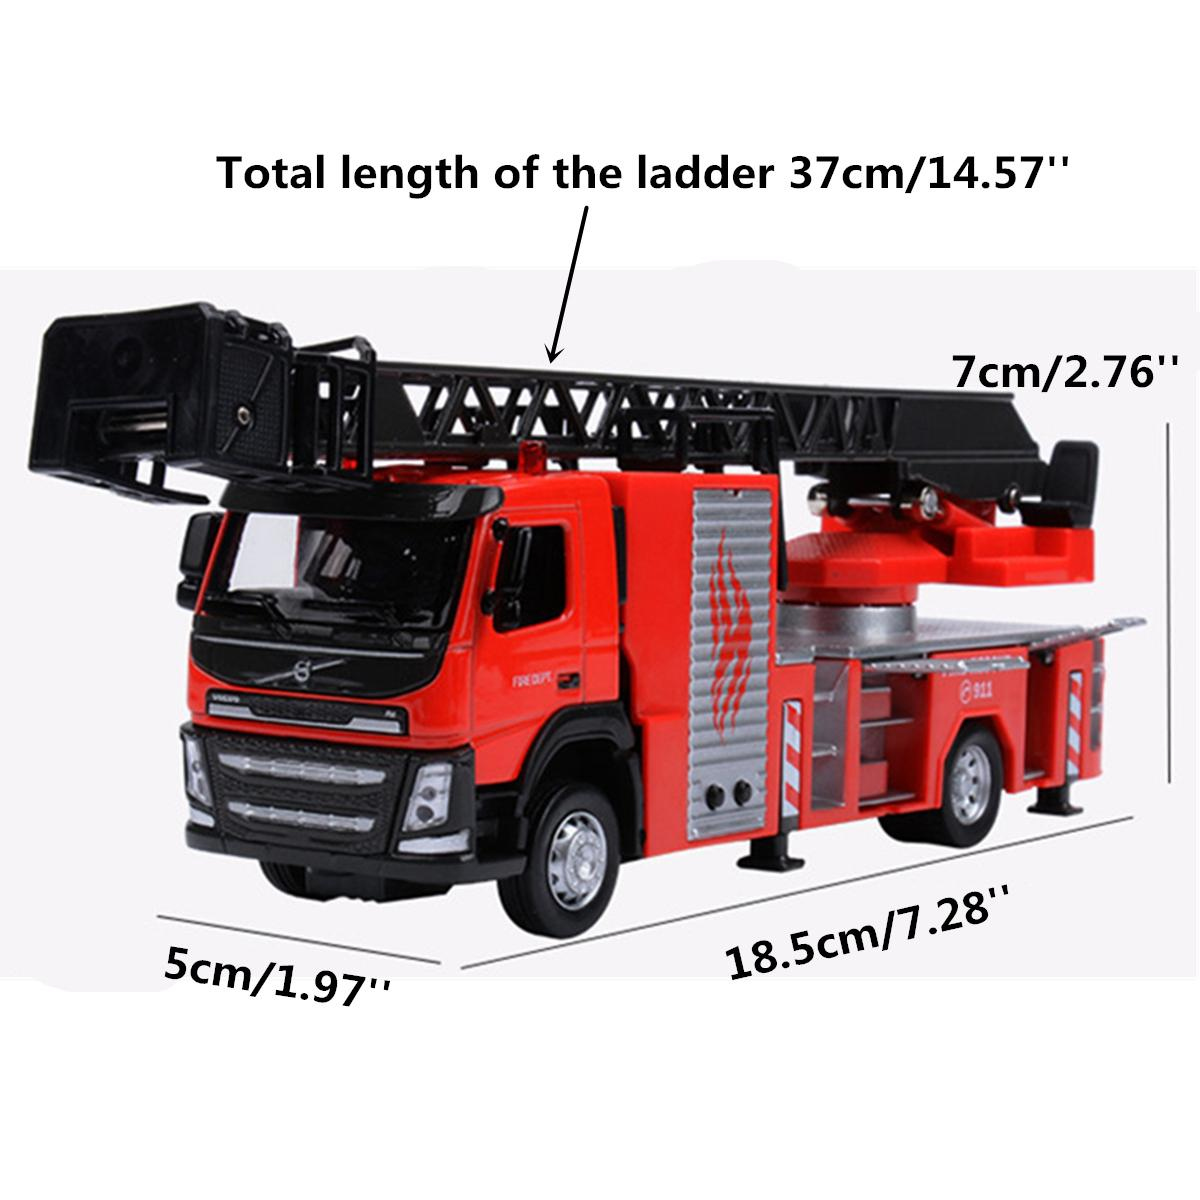 1:50 Scale Ladder Fire Engine Truck Toy Vehicles Models Alloy Model Car With Sound Light Diecast Metal Car Model Boy Child Gifts